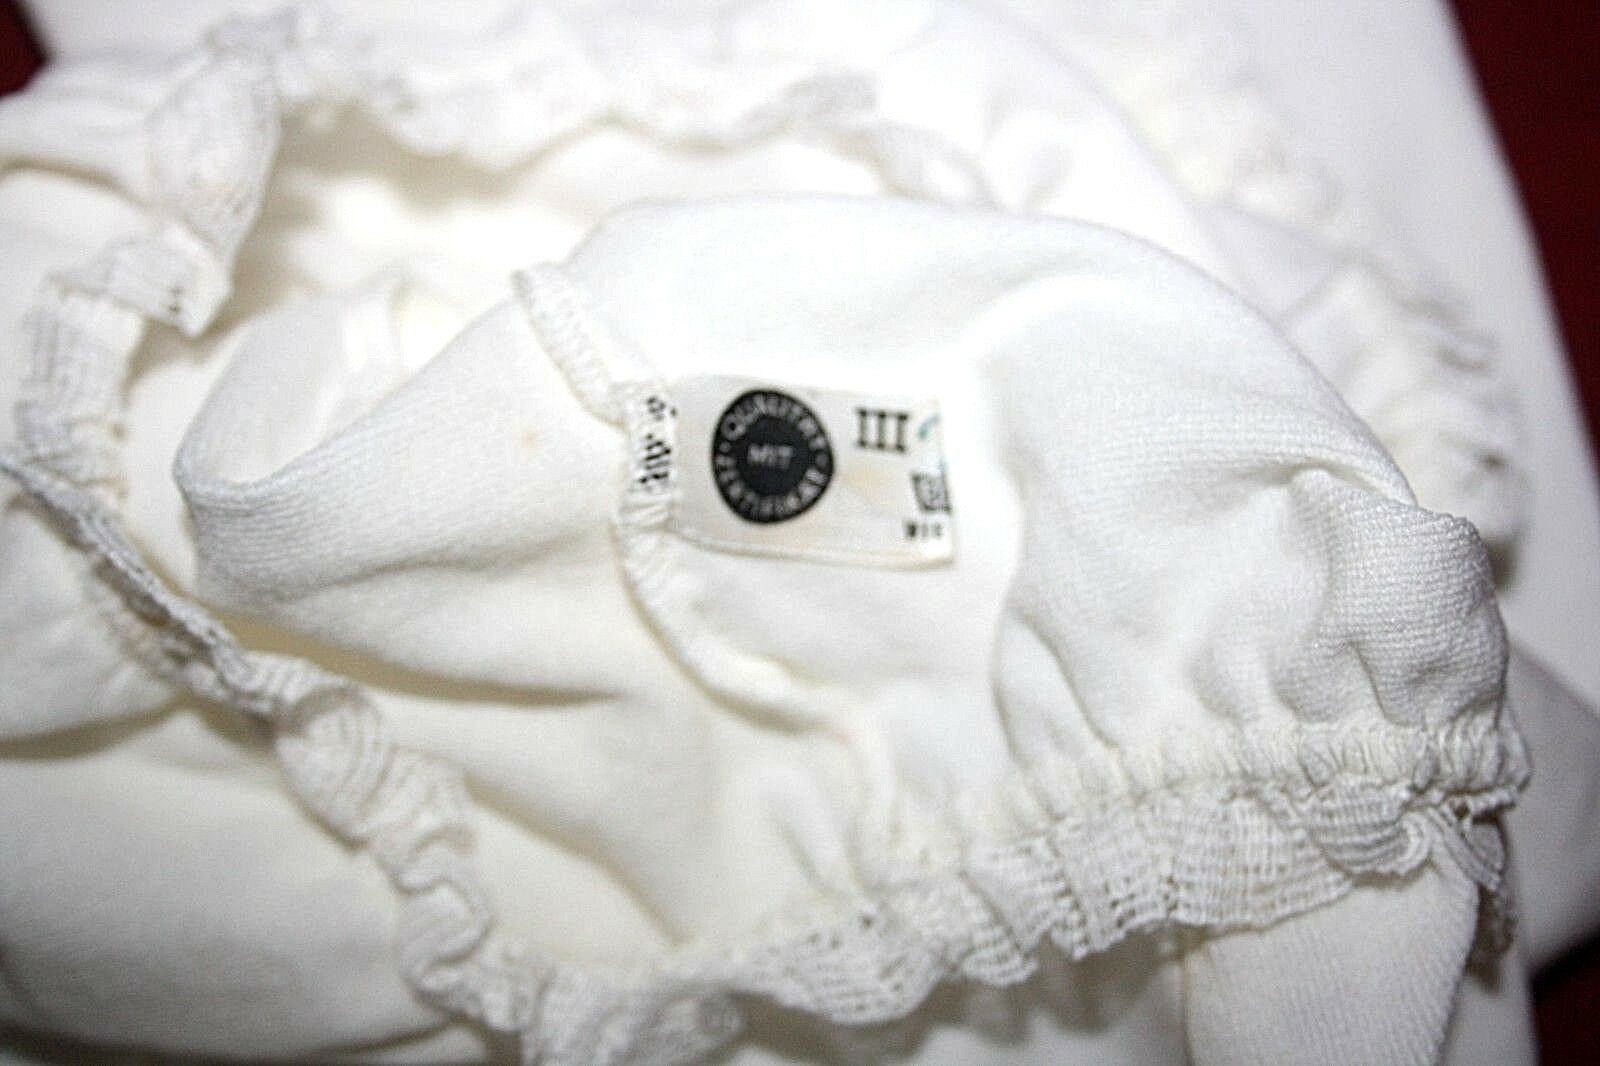 Original 1950er Ans Nylon Maillot manches Corps Chemise manches Maillot courtes HELANCA BLANC TAILLE 44 vintage 083f40